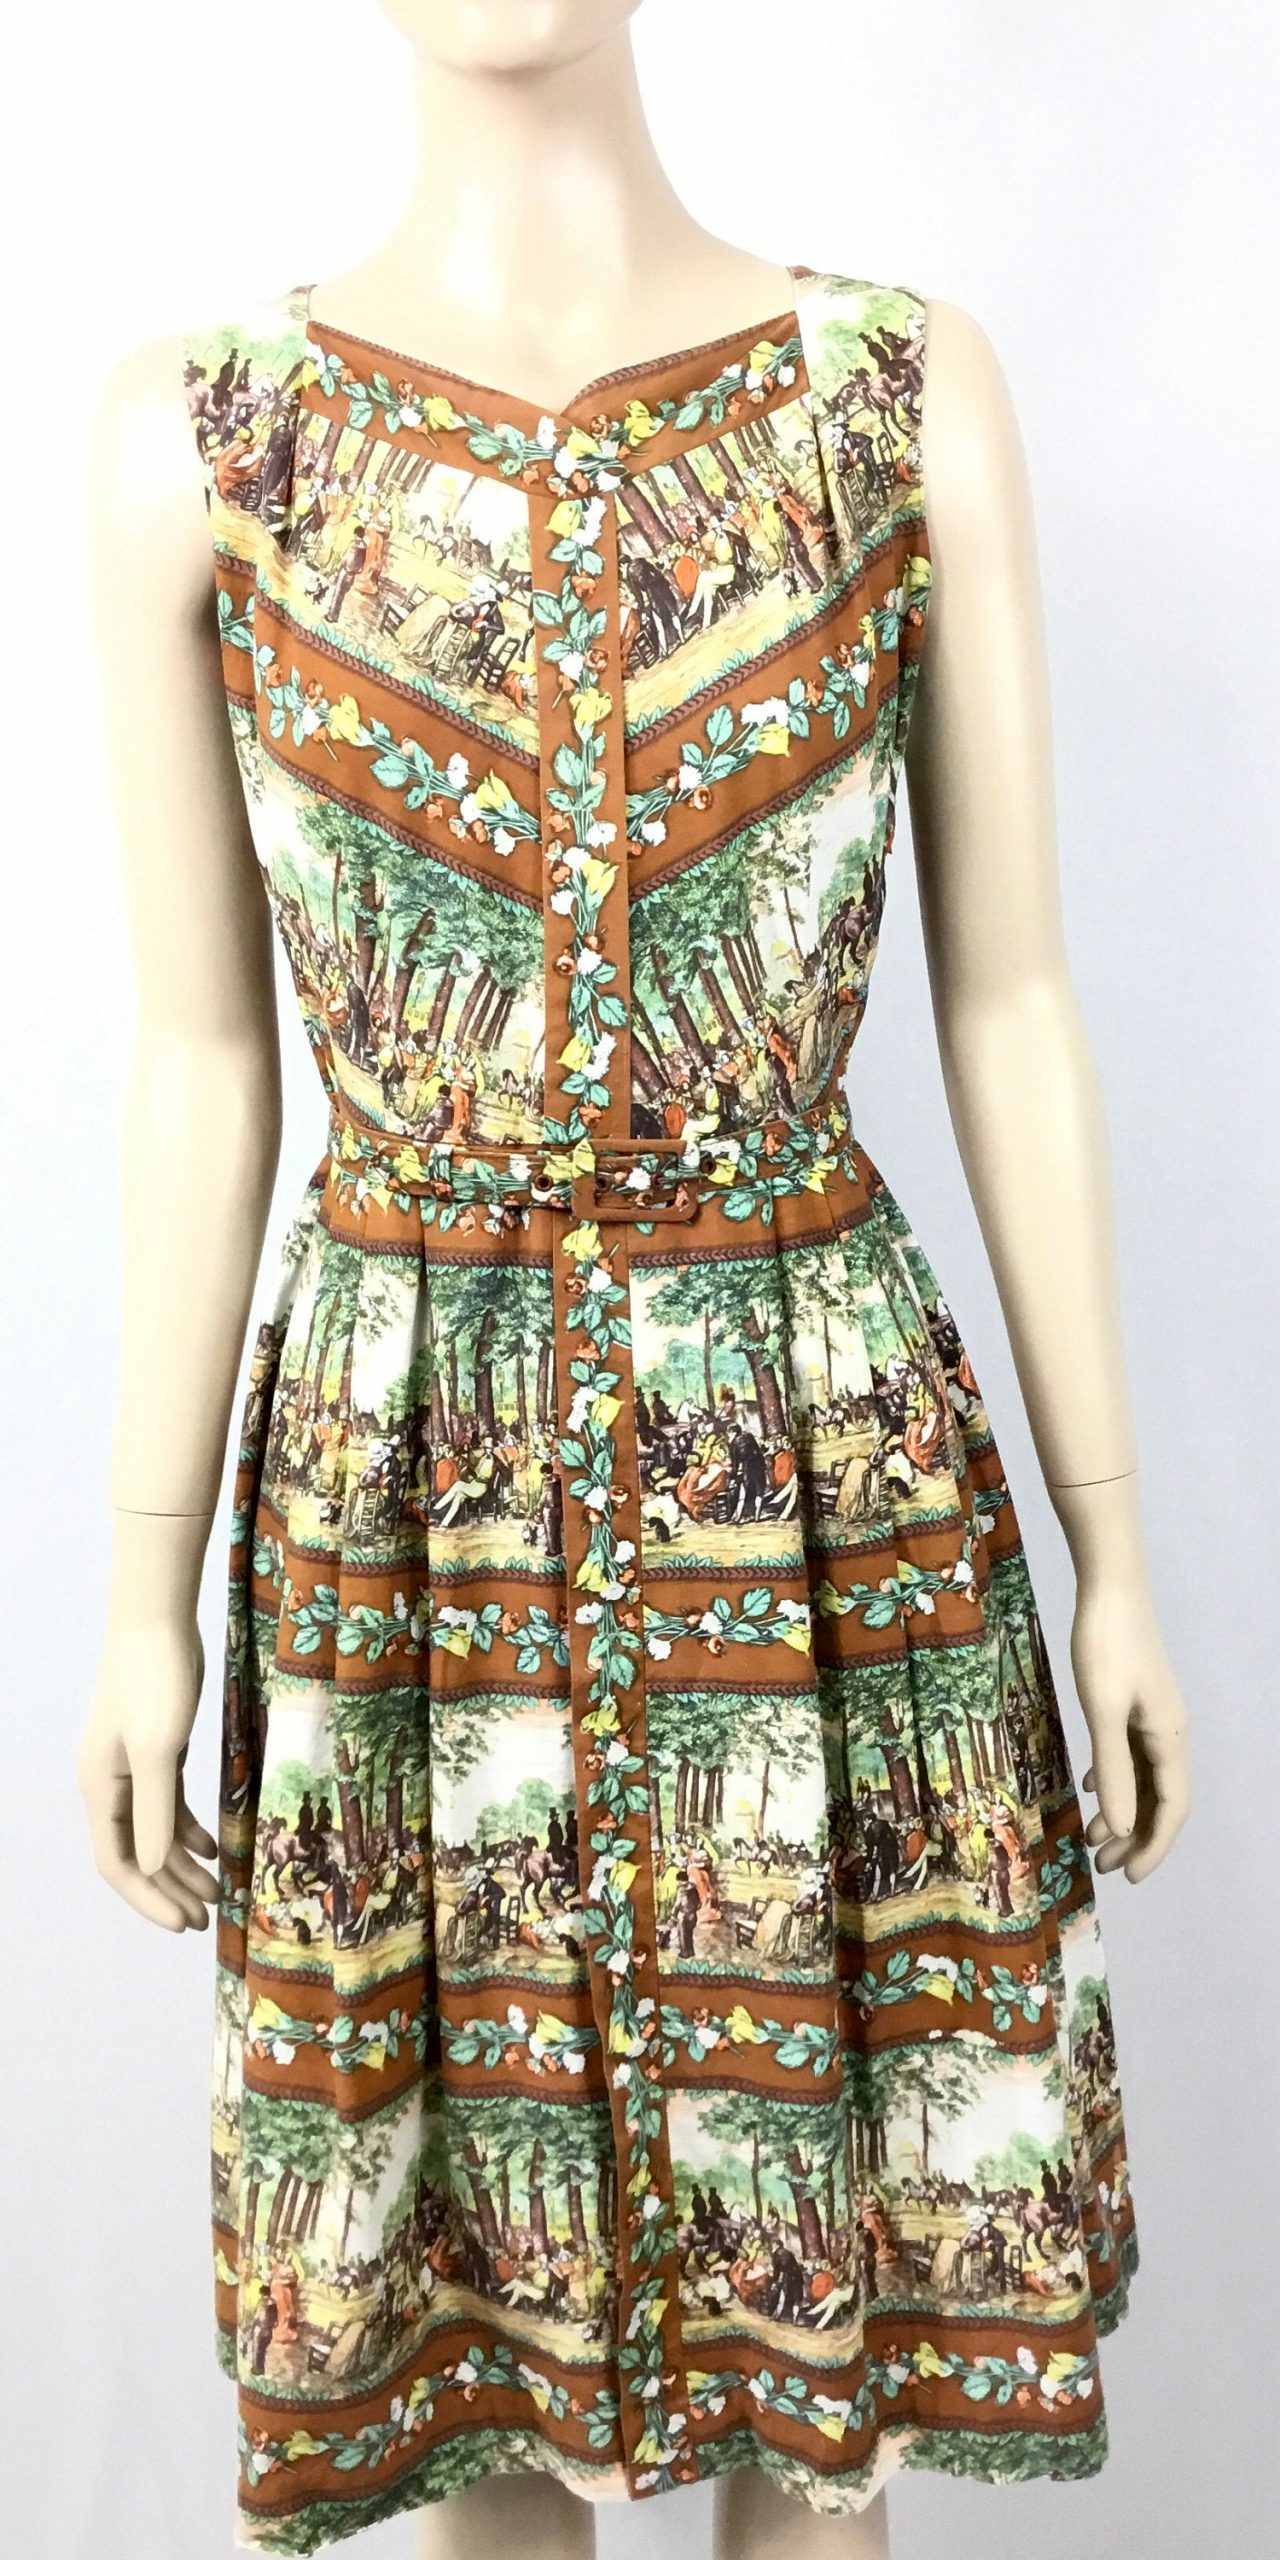 1950S Cotton Equestrian Print Dress. Belted. Small Size Dress, Sleeveless, Tailored 50 S Dress